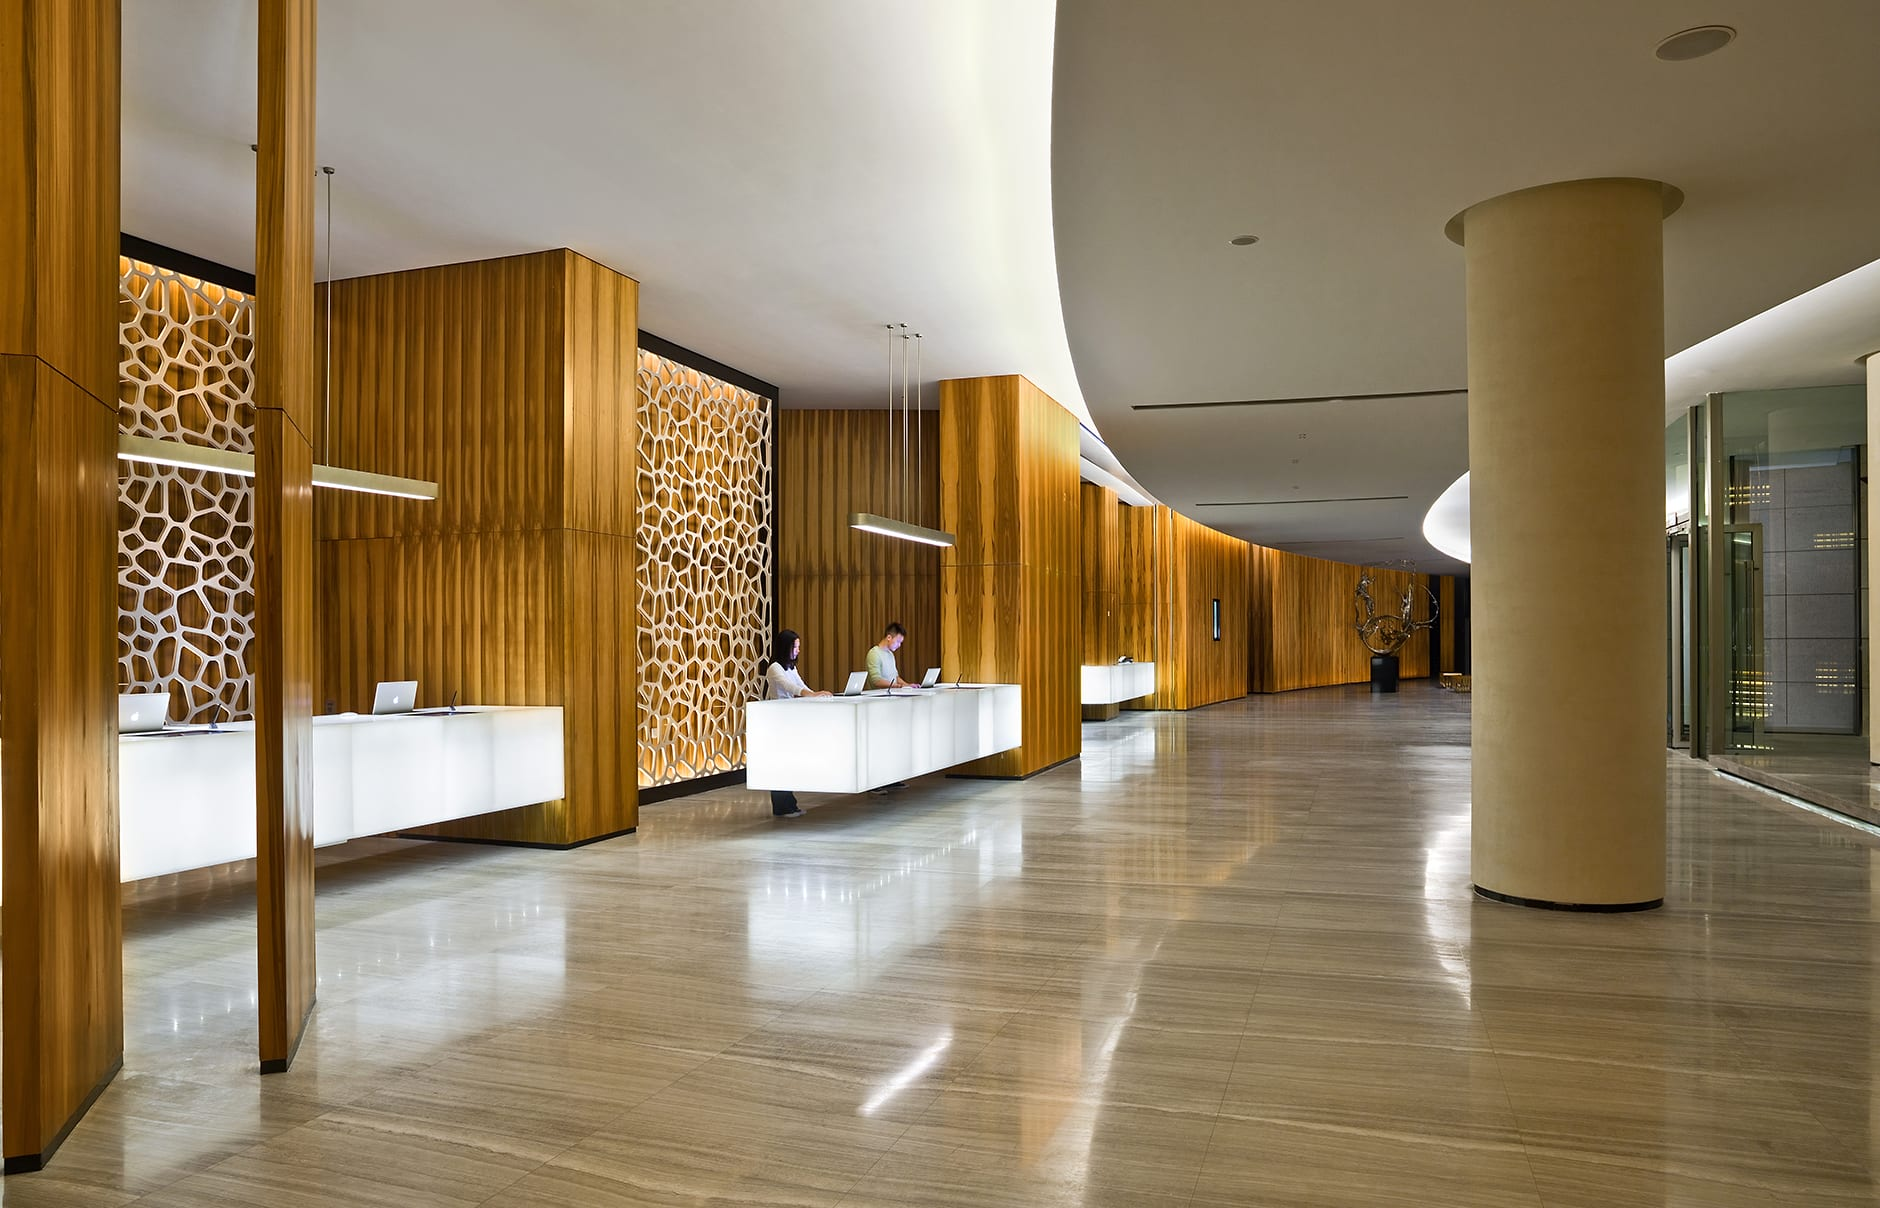 Lobby. EAST Beijing, China. © Swire Hotels